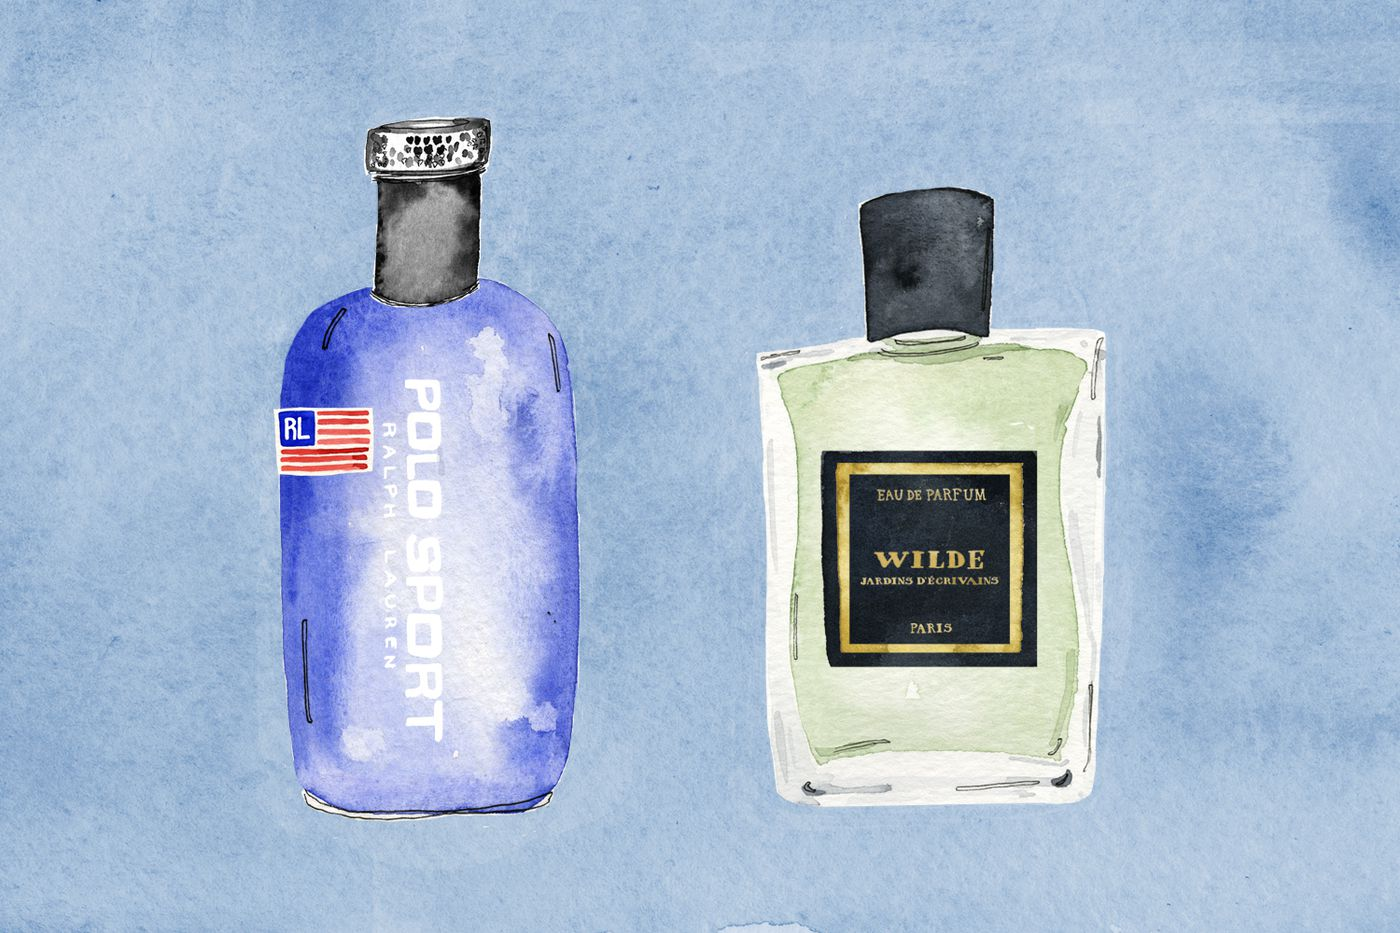 a4c3363e9 Classic '90s Fragrances Meet Their Modern-Day Upgrades - Racked NY